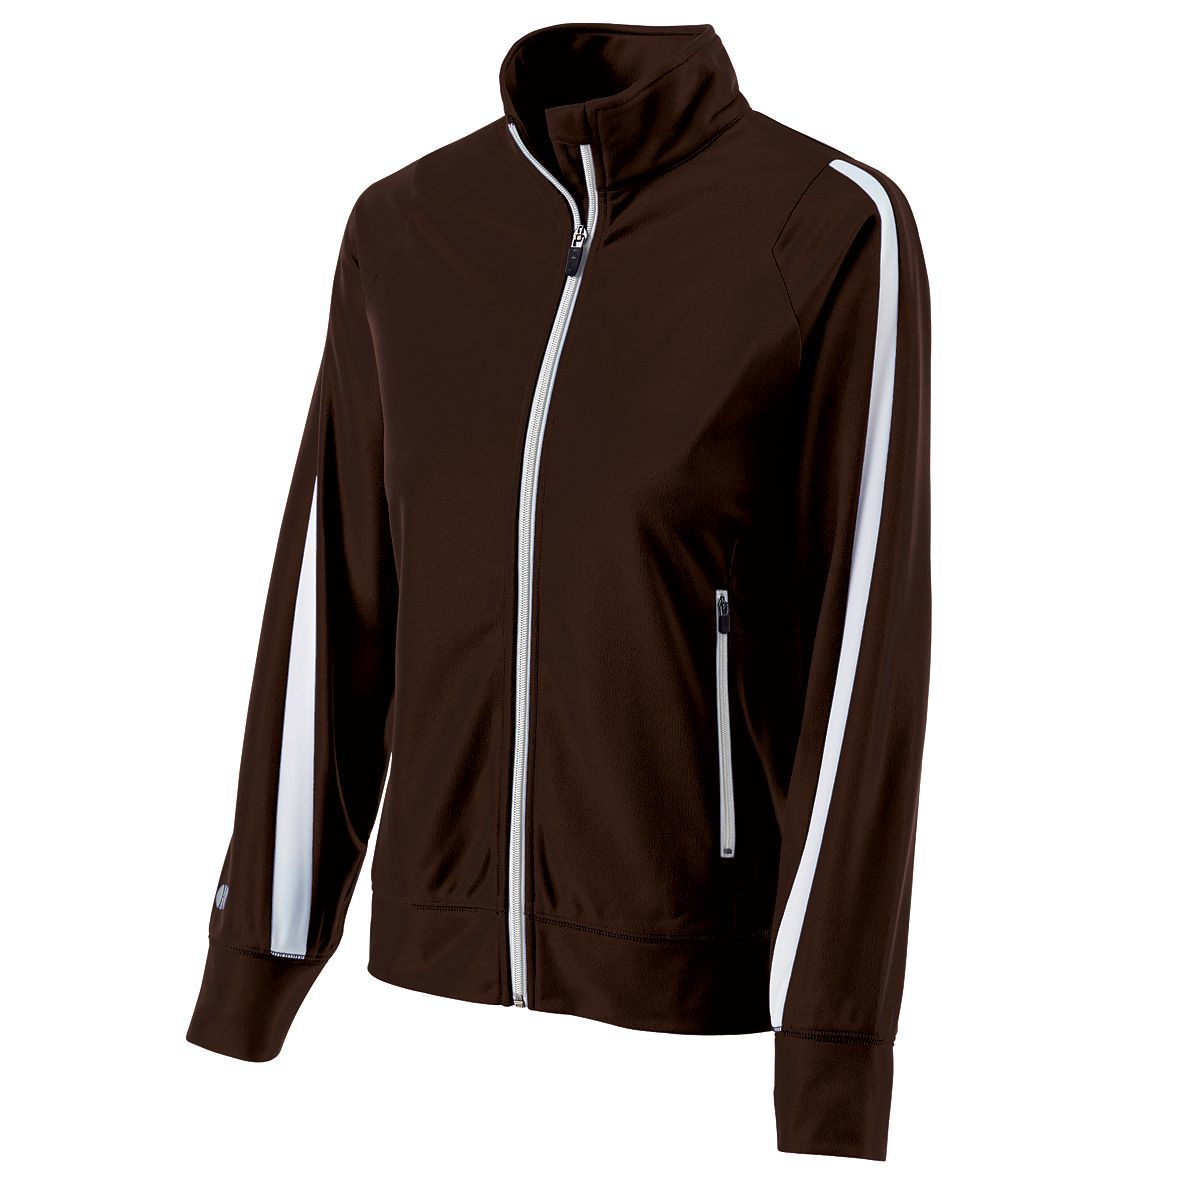 Ladies Determination Jacket - BROWN/WHITE